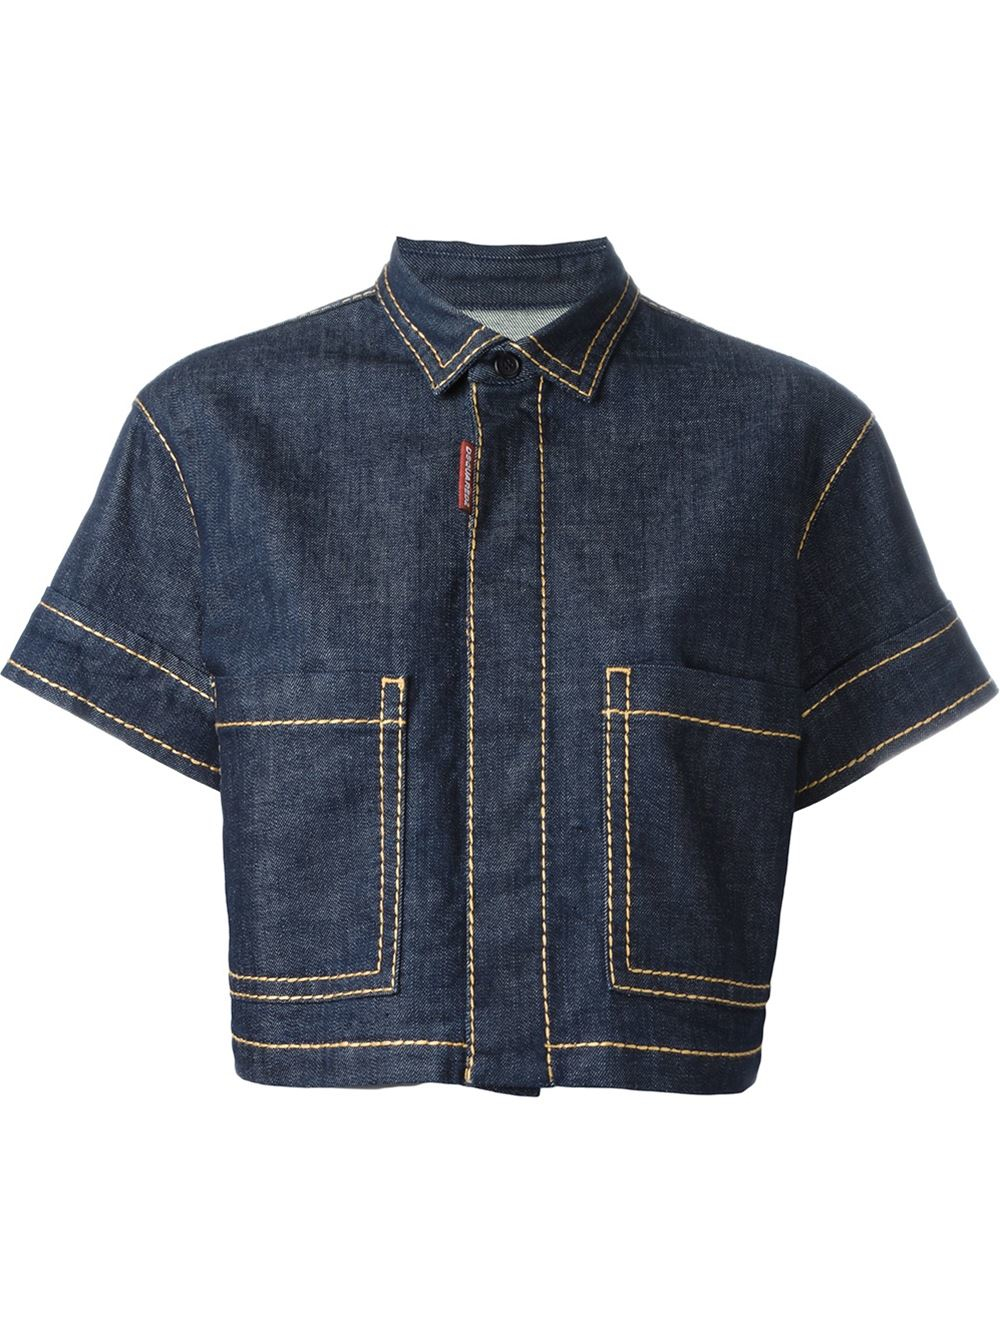 Shop for Short Sleeve Denim Jacket at hitseparatingfiletransfer.tk Find what you need with our on-trend clothing and designer collaborations. Free in-store shipping & returns.